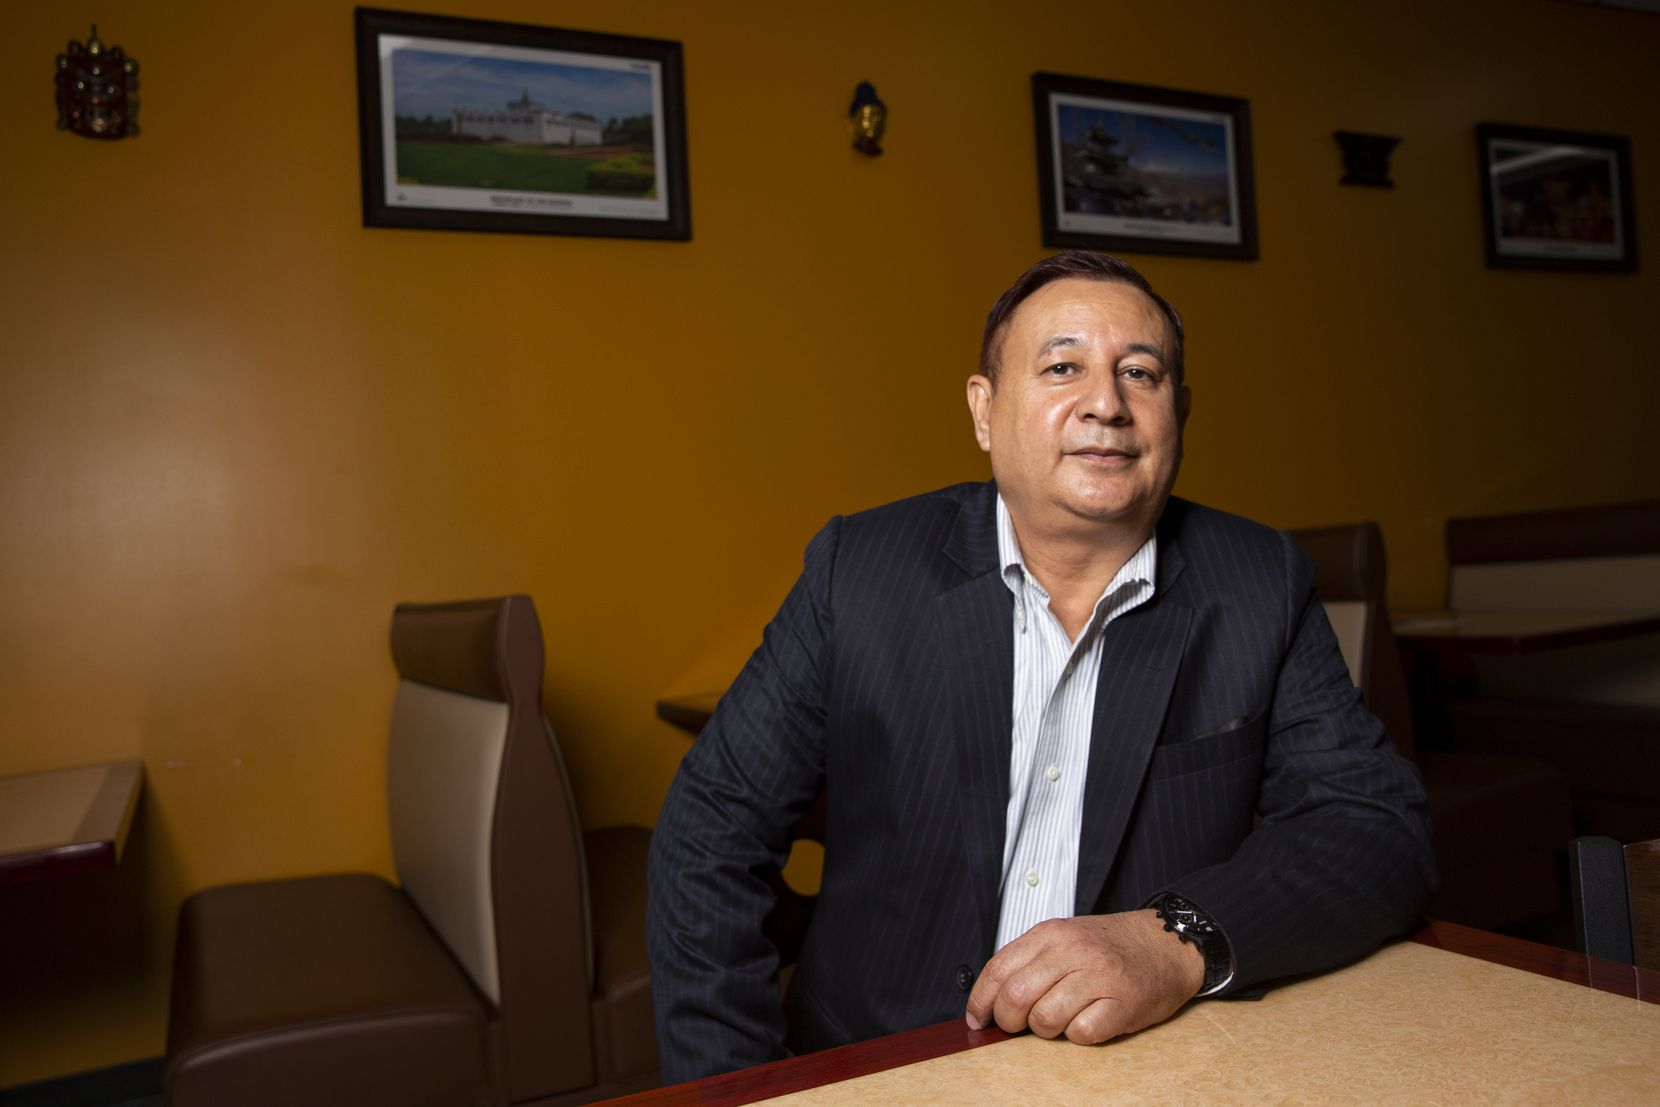 Mohan Gyawali Chhetri, a voter in the 24th Congressional District, poses for a photo at The Gurkha Bar & Grill in Euless.